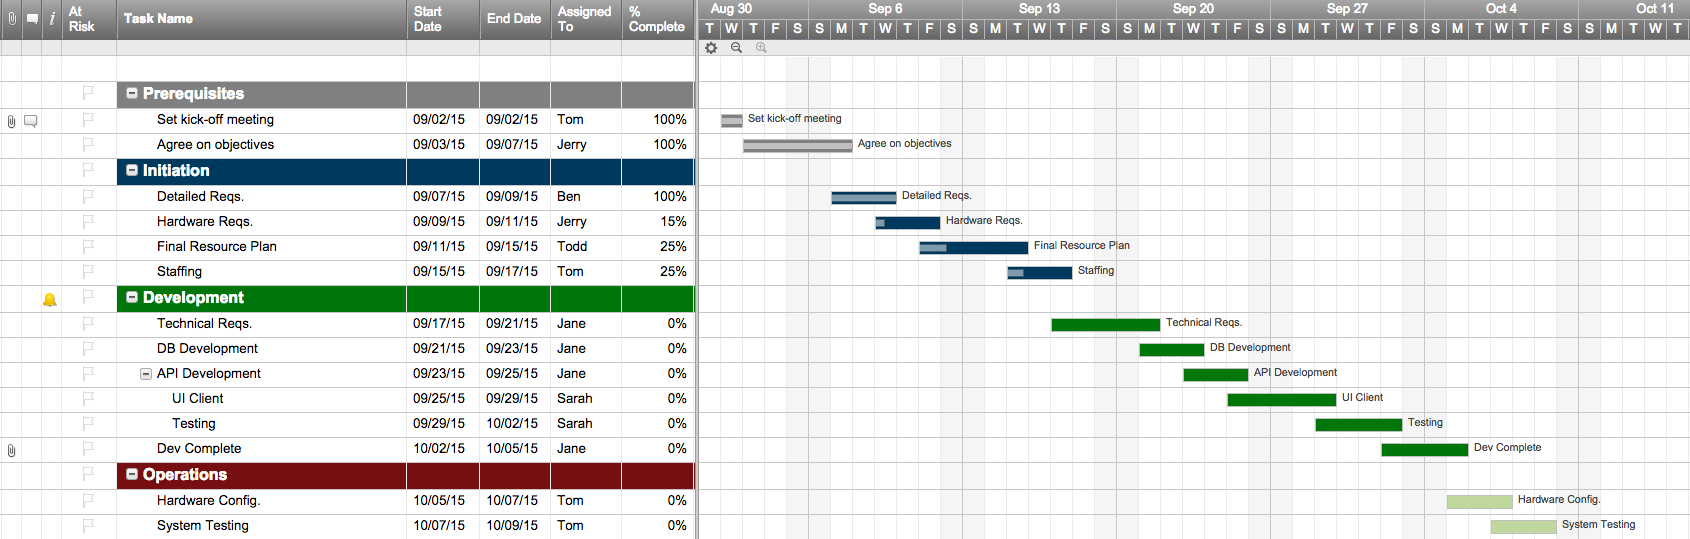 Project Plan Spreadsheet Examples With Top Project Plan Templates For Excel  Smartsheet